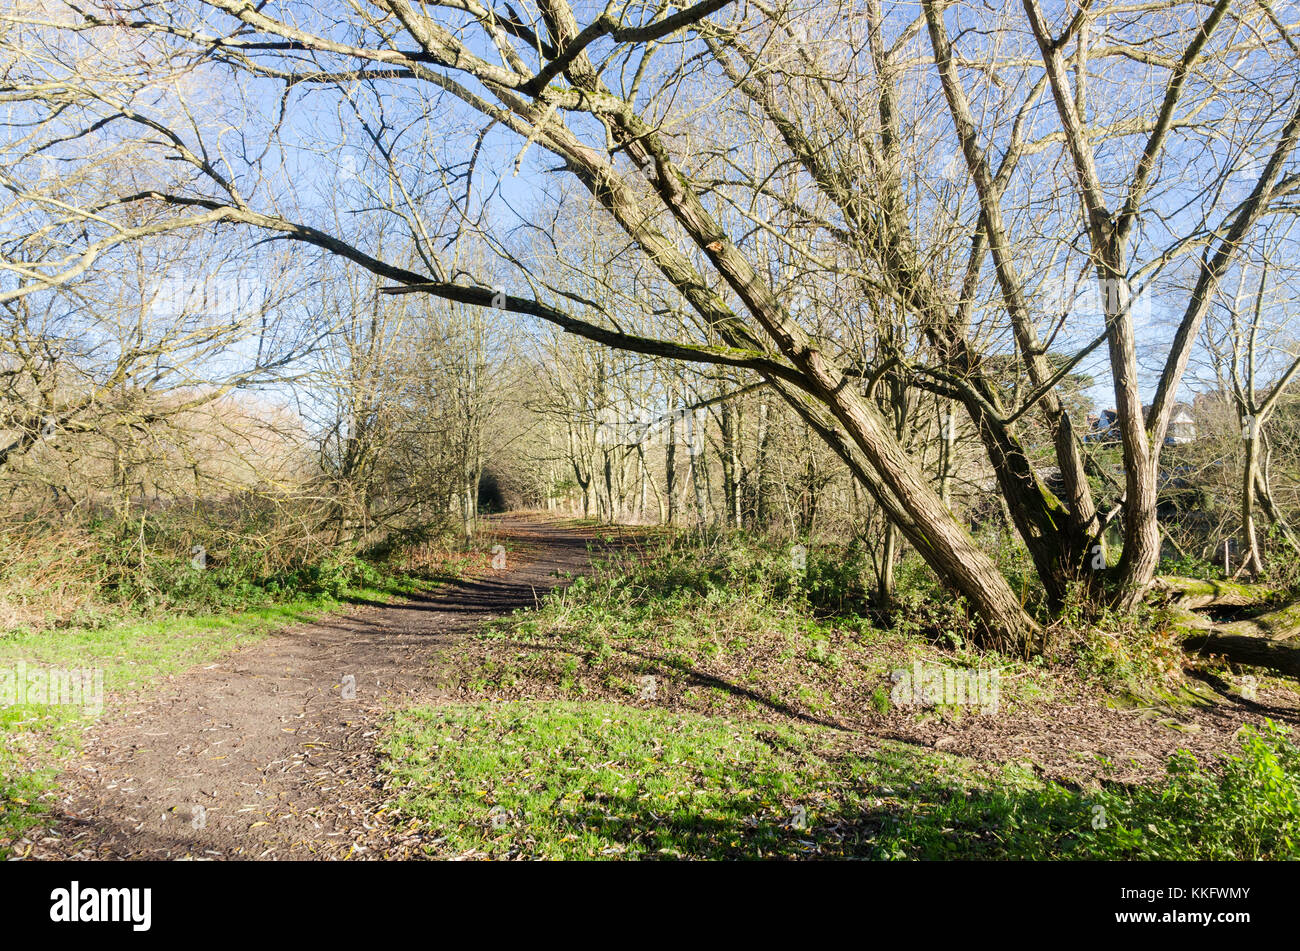 Footpath alongside the River Avon on the outskirts of Stratford-upon-Avon, Warwickshire, UK - Stock Image